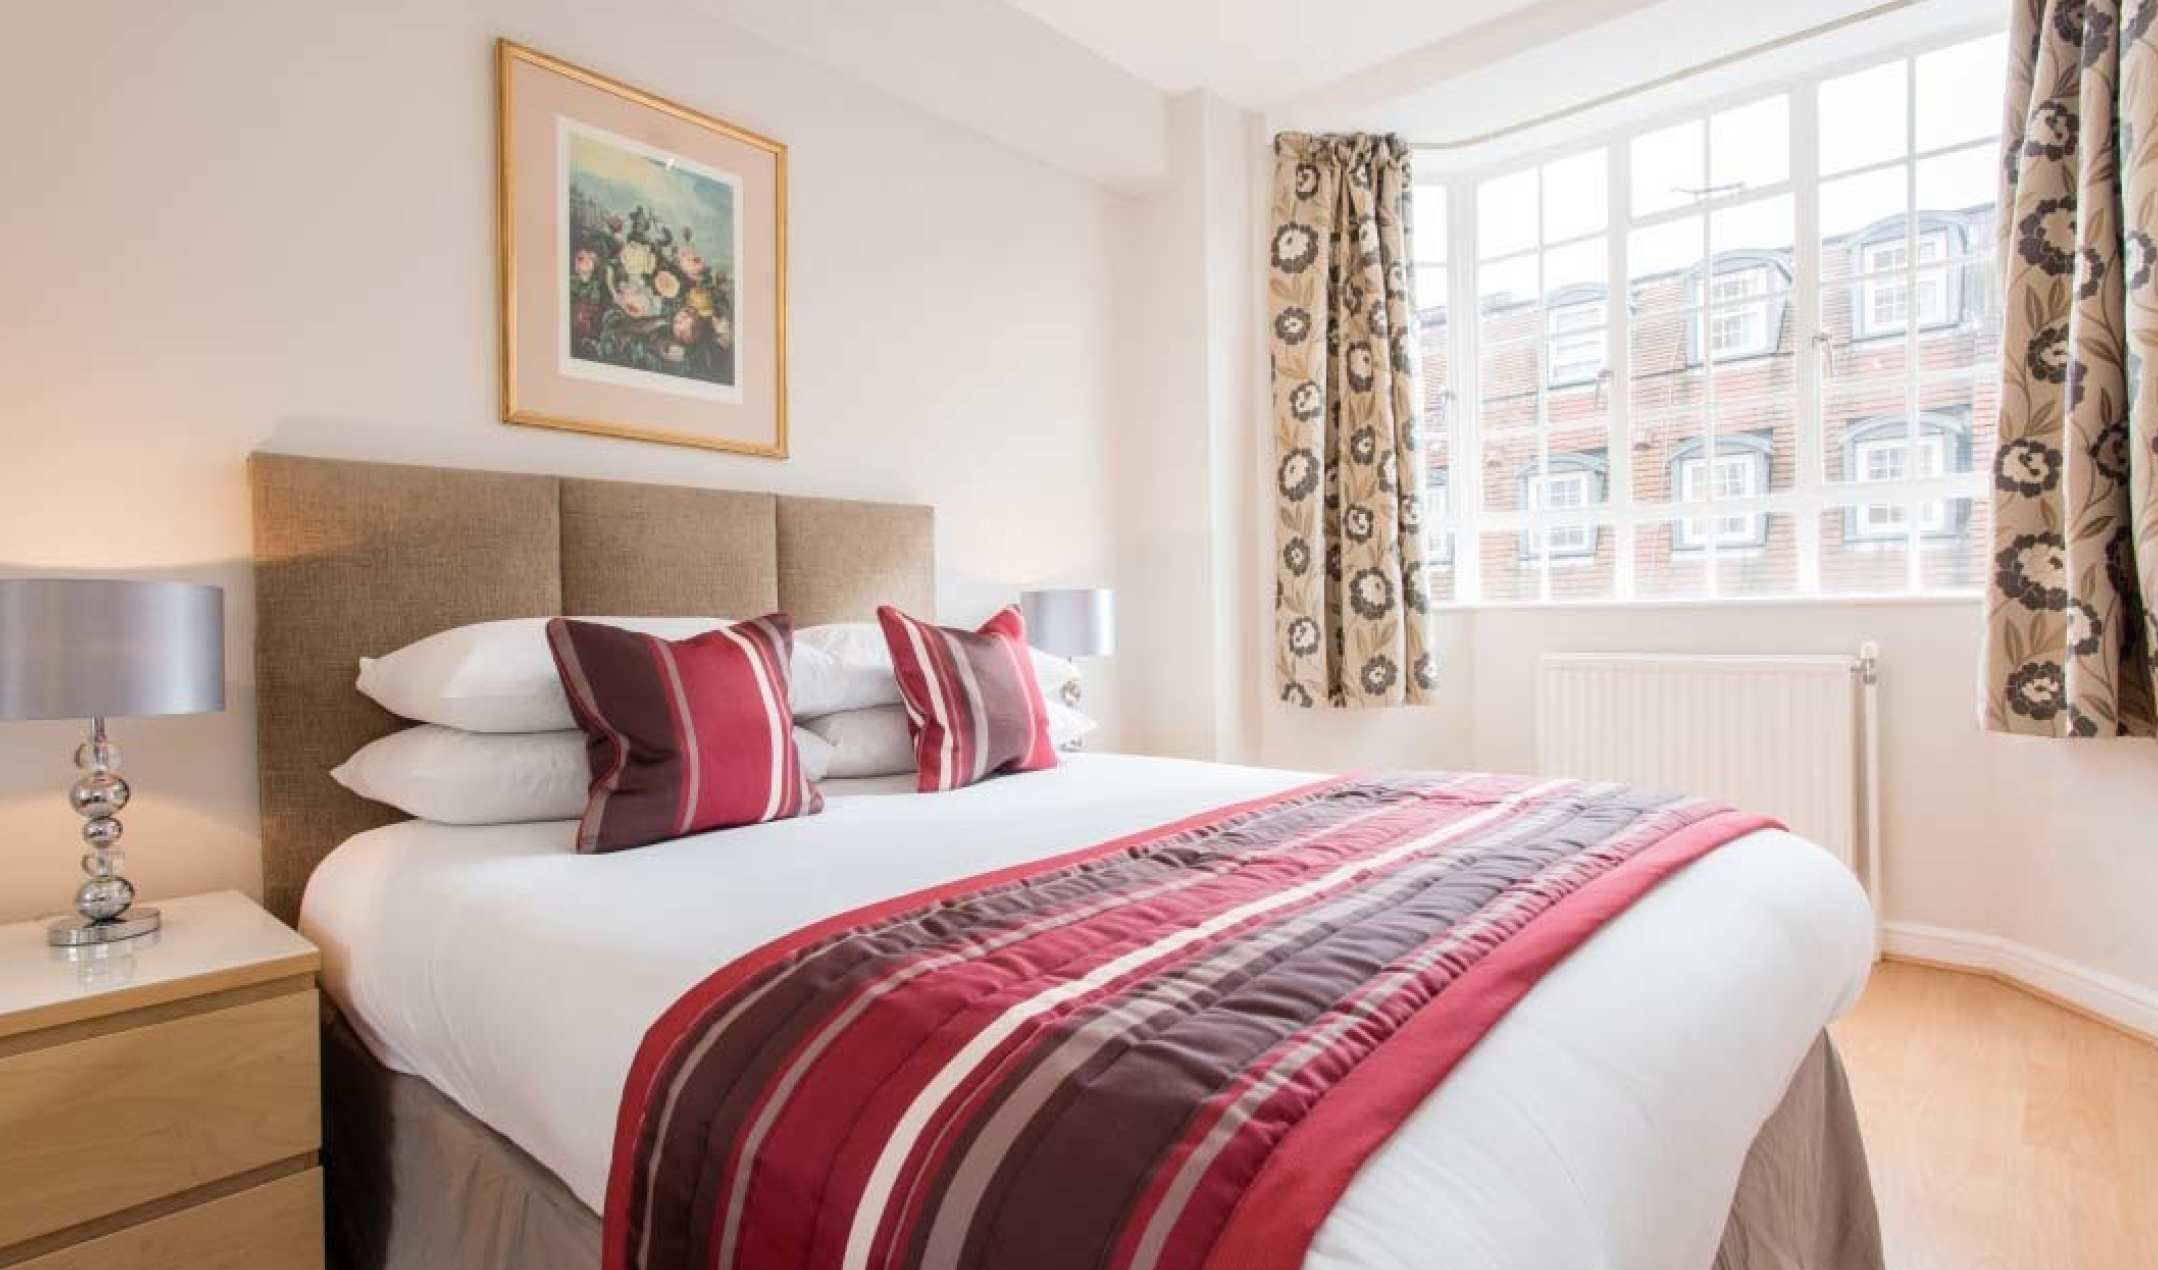 One bedroom apartment at Chelsea Cloisters in London